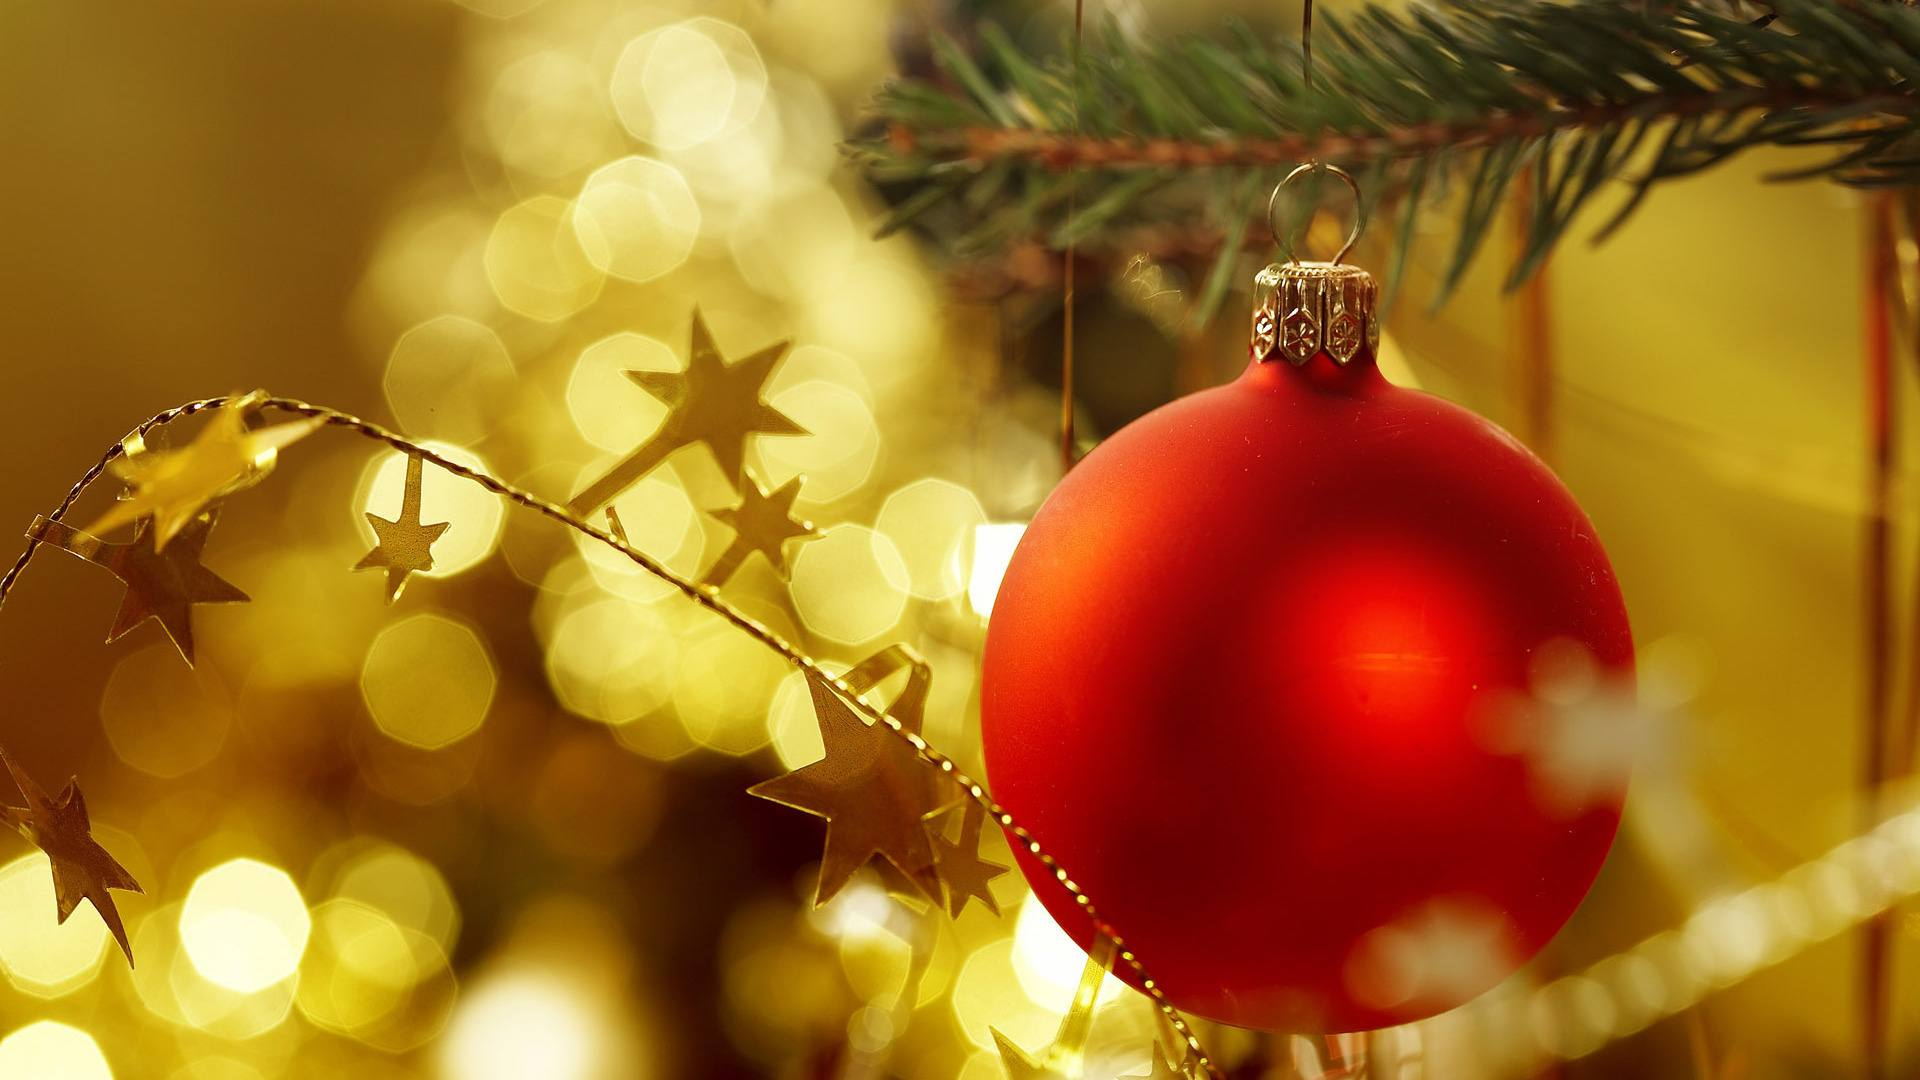 ws Red Christmas ball 1920x1080 5a2825b37d4be80019550859